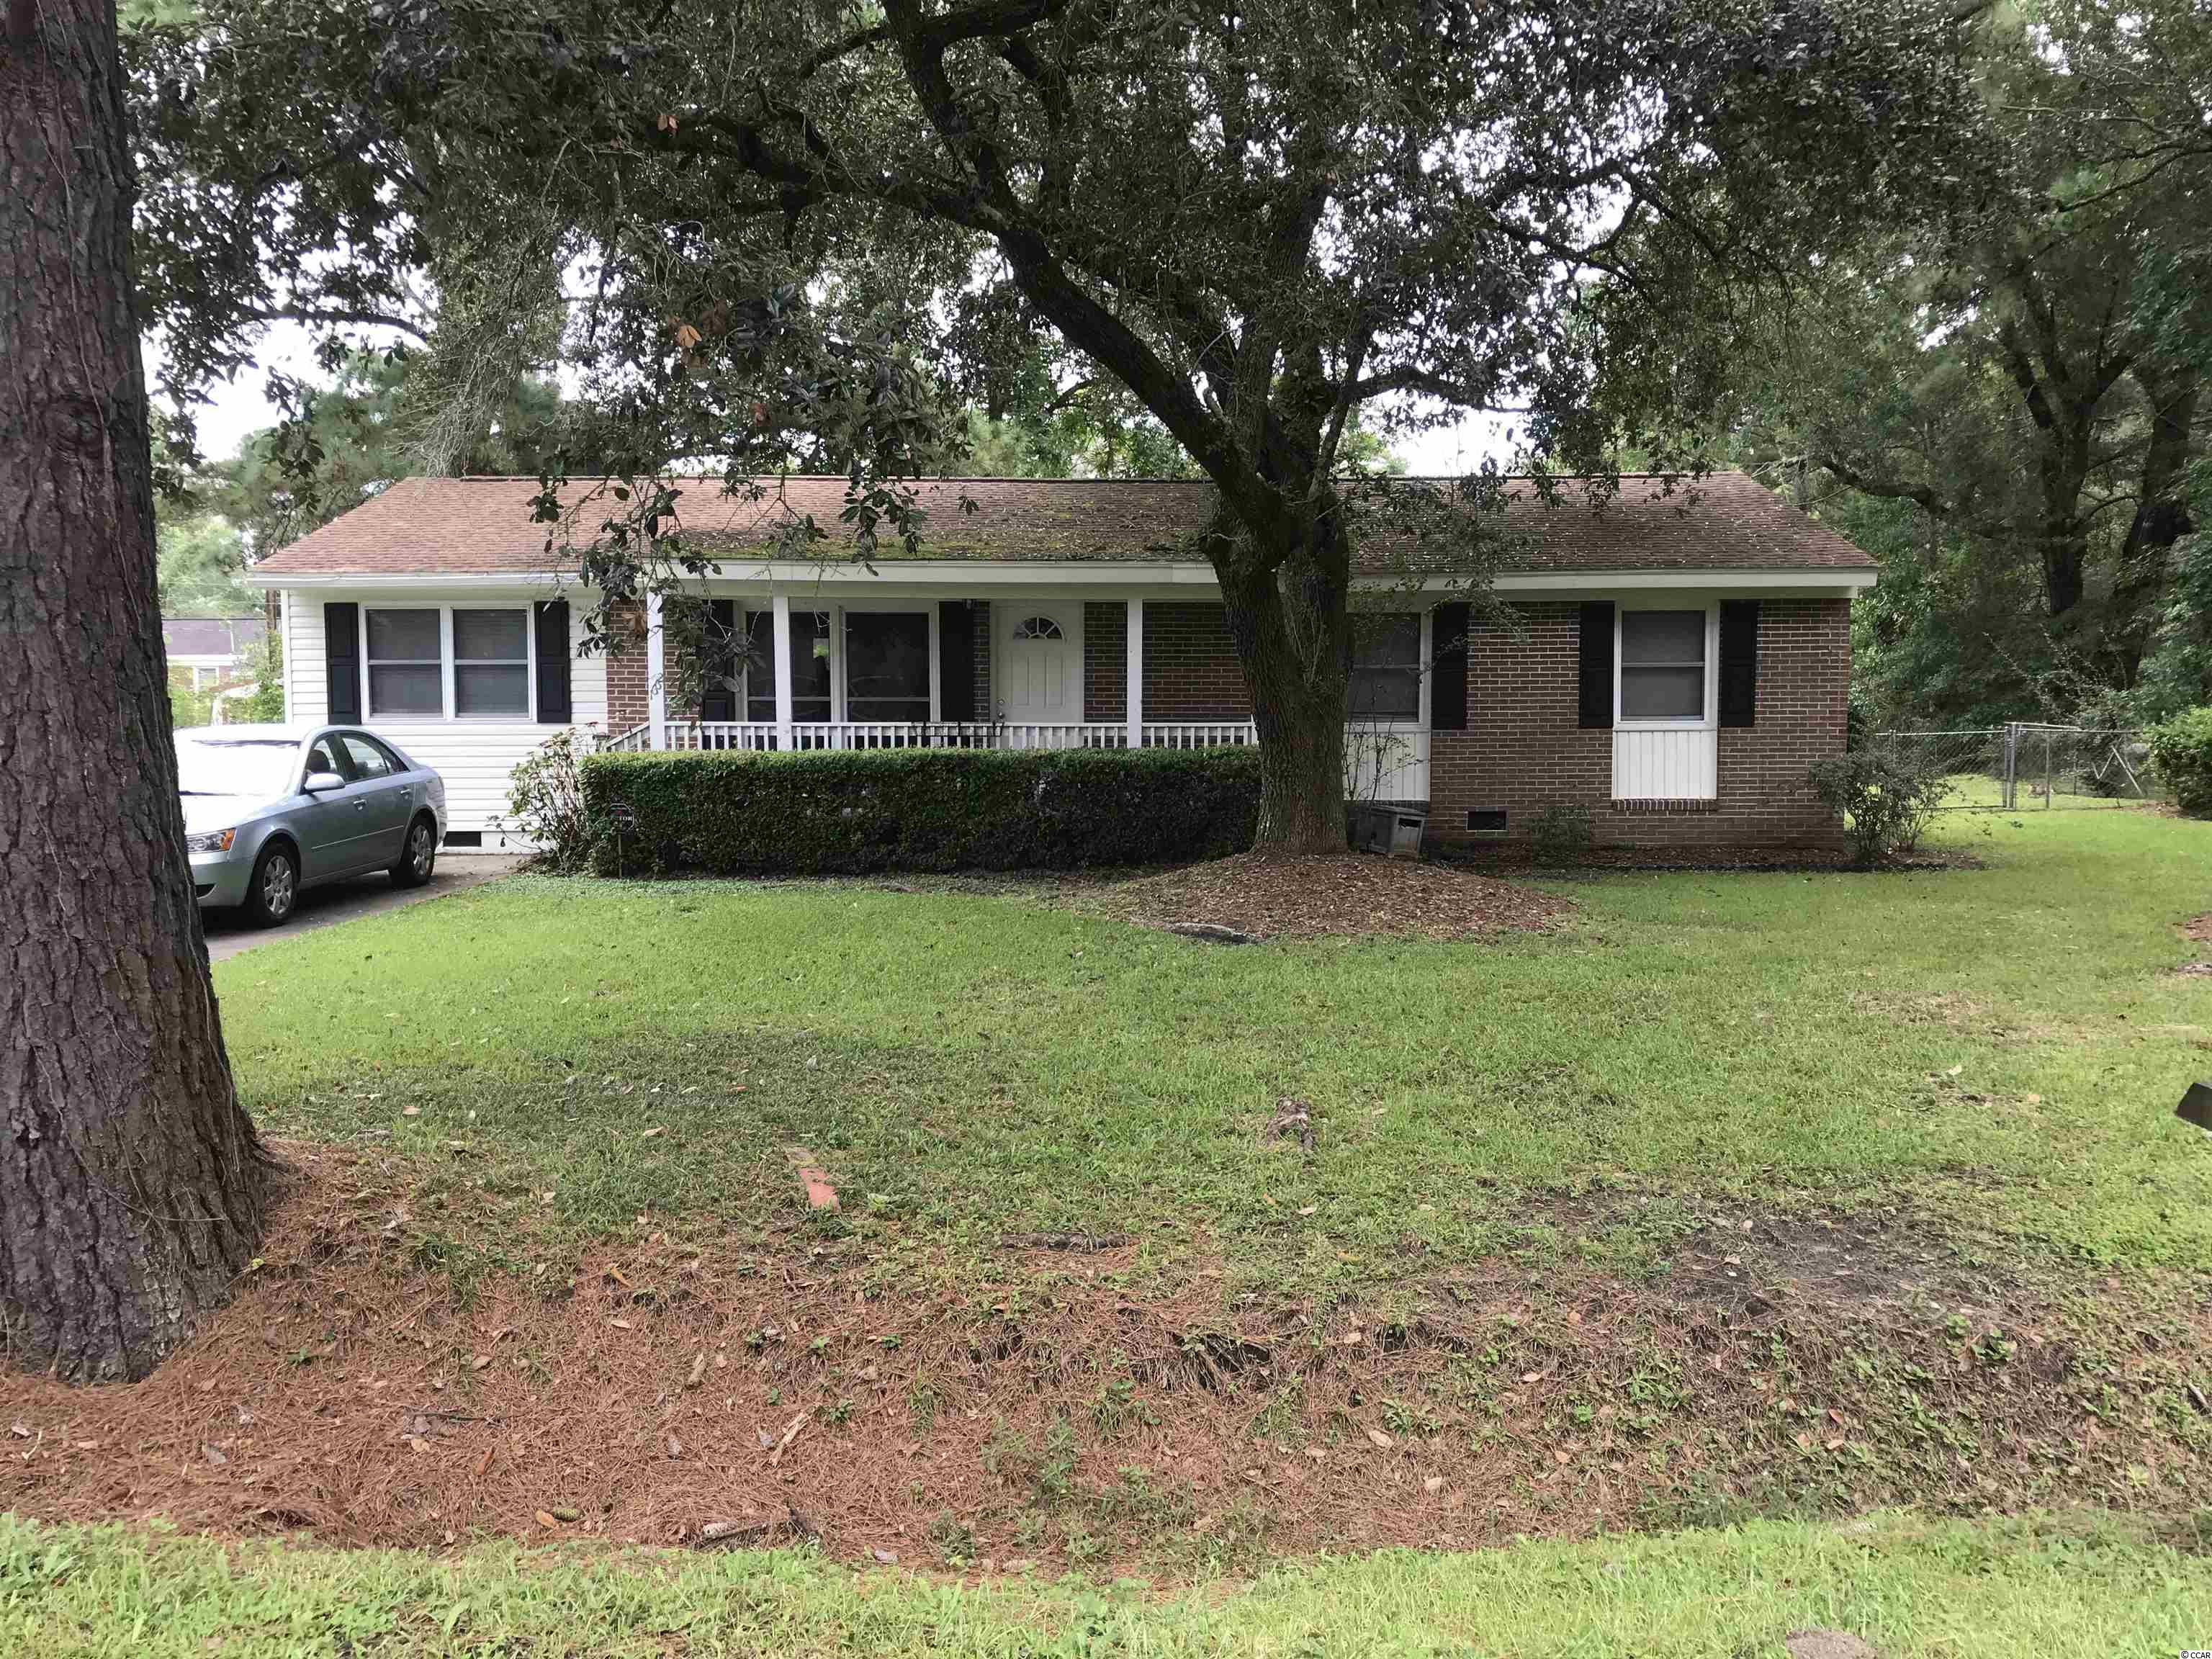 LOW MAINTENANCE EXTERIOR BRICK & VINYL HOME LOCATED JUST OUTSIDE GEORGETOWN CITY LIMITS (NO CITY TAXES) IN THE DESIRABLE NEIGHBORHOOD OF KENSINGTON SUBDIVISION.   CLOSE TO ALL COMMUNITY SCHOOLS, SHOPPING & DINING.   HARDWOOD AND CERAMIC TILE FLOORS, STORM WINDOWS, HVAC HANDLER REPLACED IN 2019 AND FAN BLOWER REPLACED 2021; FENCED YARD.